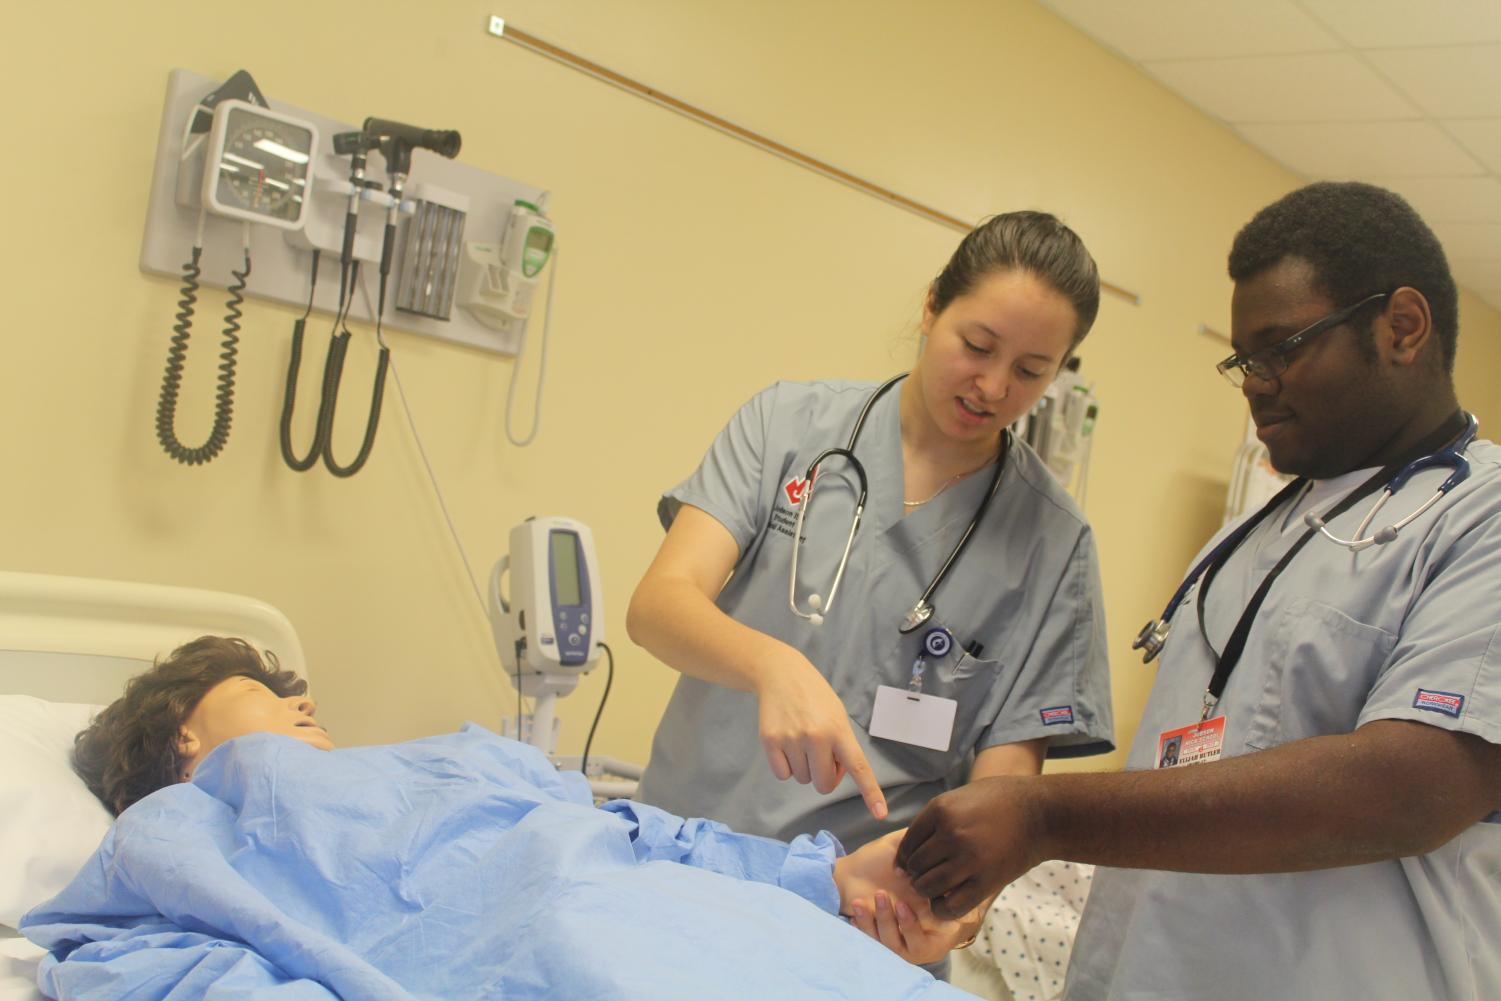 Two students examine a mannequin being used as a fake patient. Medical assistants are trained to deal with patient care.